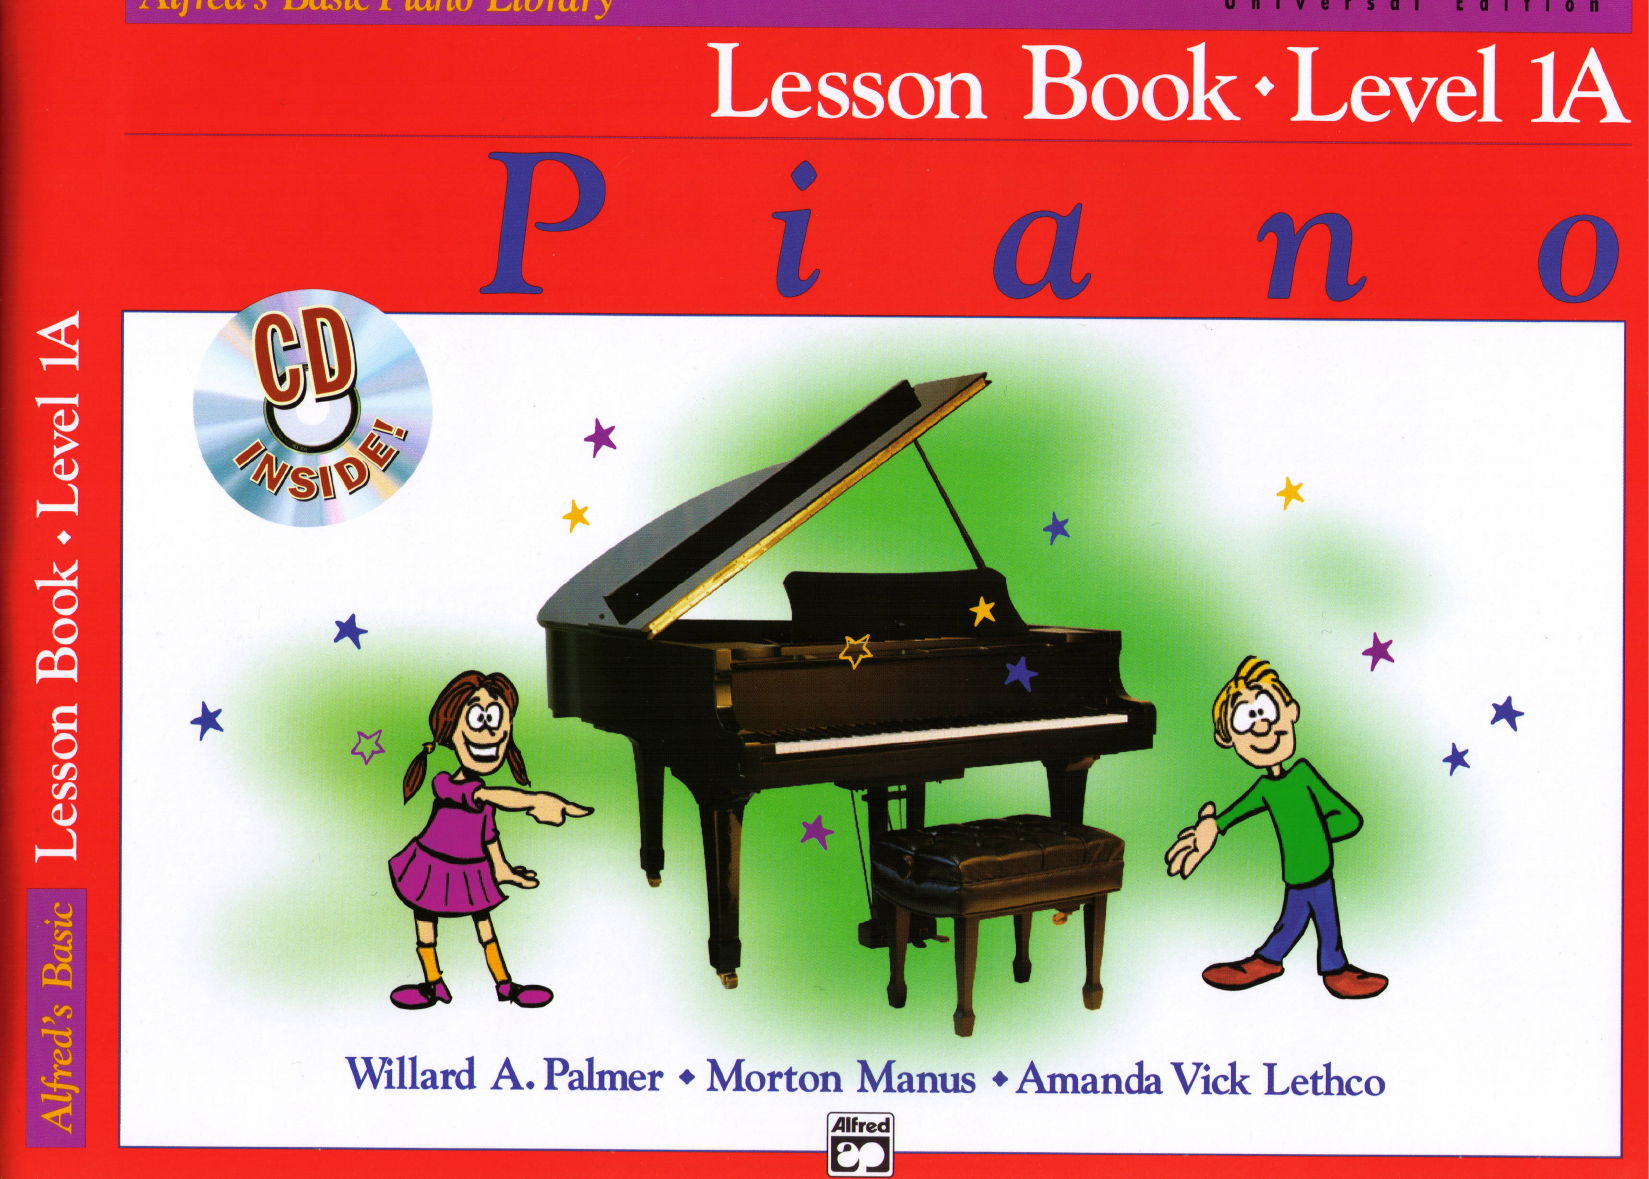 alfreds basic piano library lesson book level 1a free download